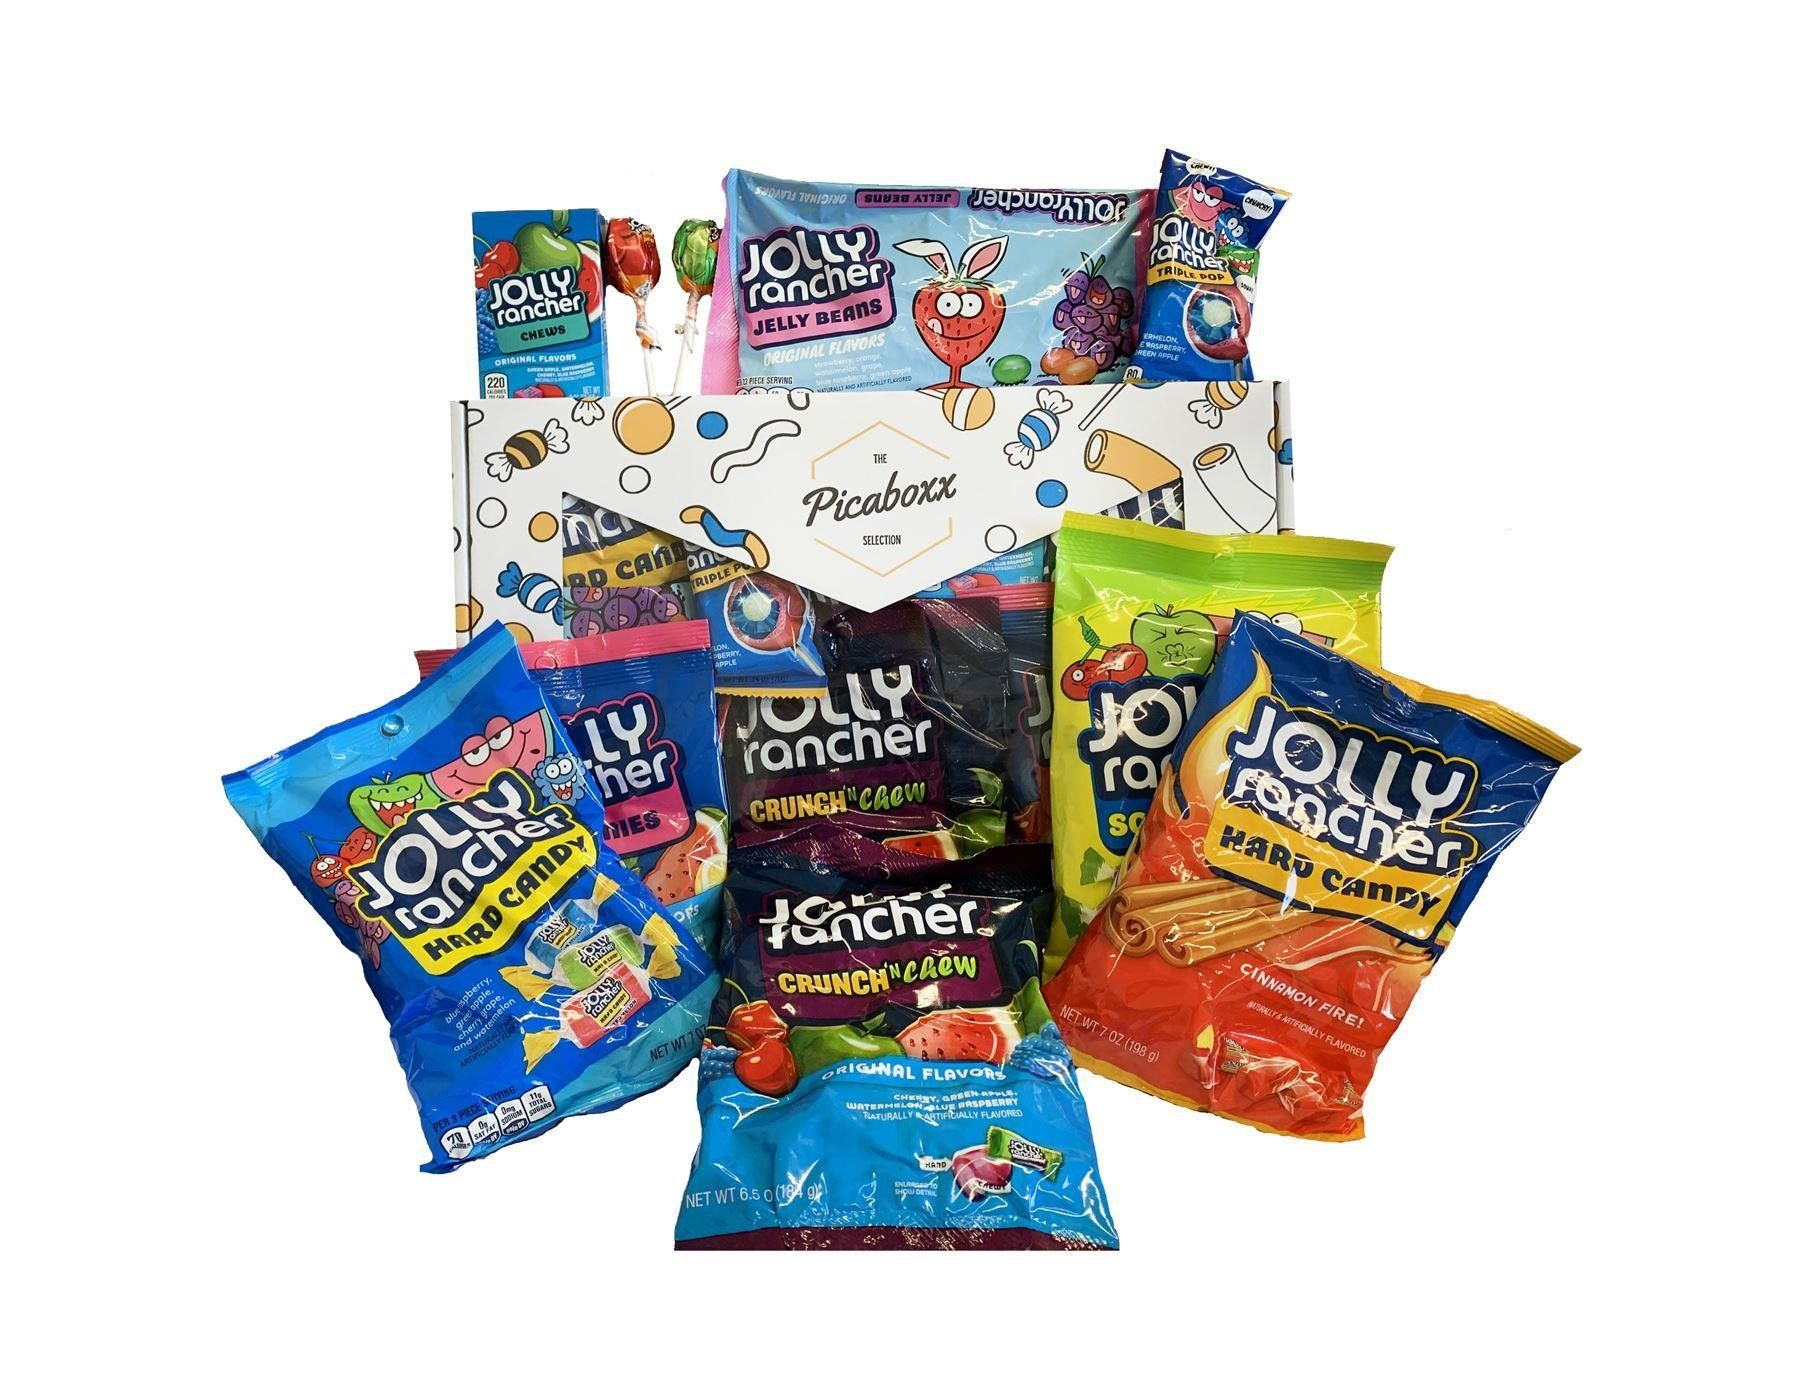 Picaboxx Jolly Rancher Large American Candy Selection Gift Box - 10 Products Mega Pack (Box of 6)